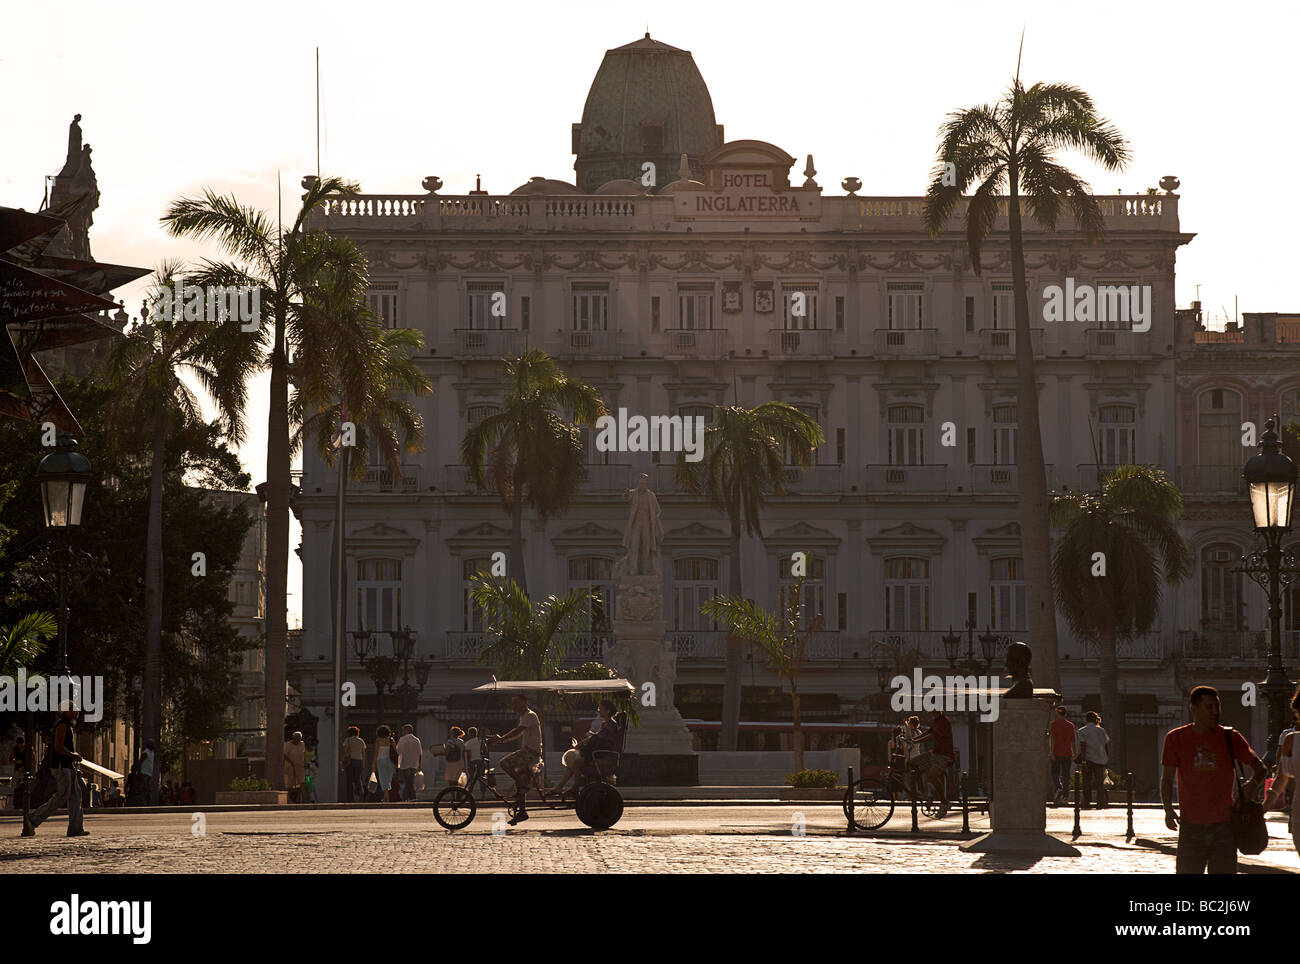 The long established Hotel Inglaterra, once the most opulent hotel in Havana. Early morning. Habana, Cuba - Stock Image